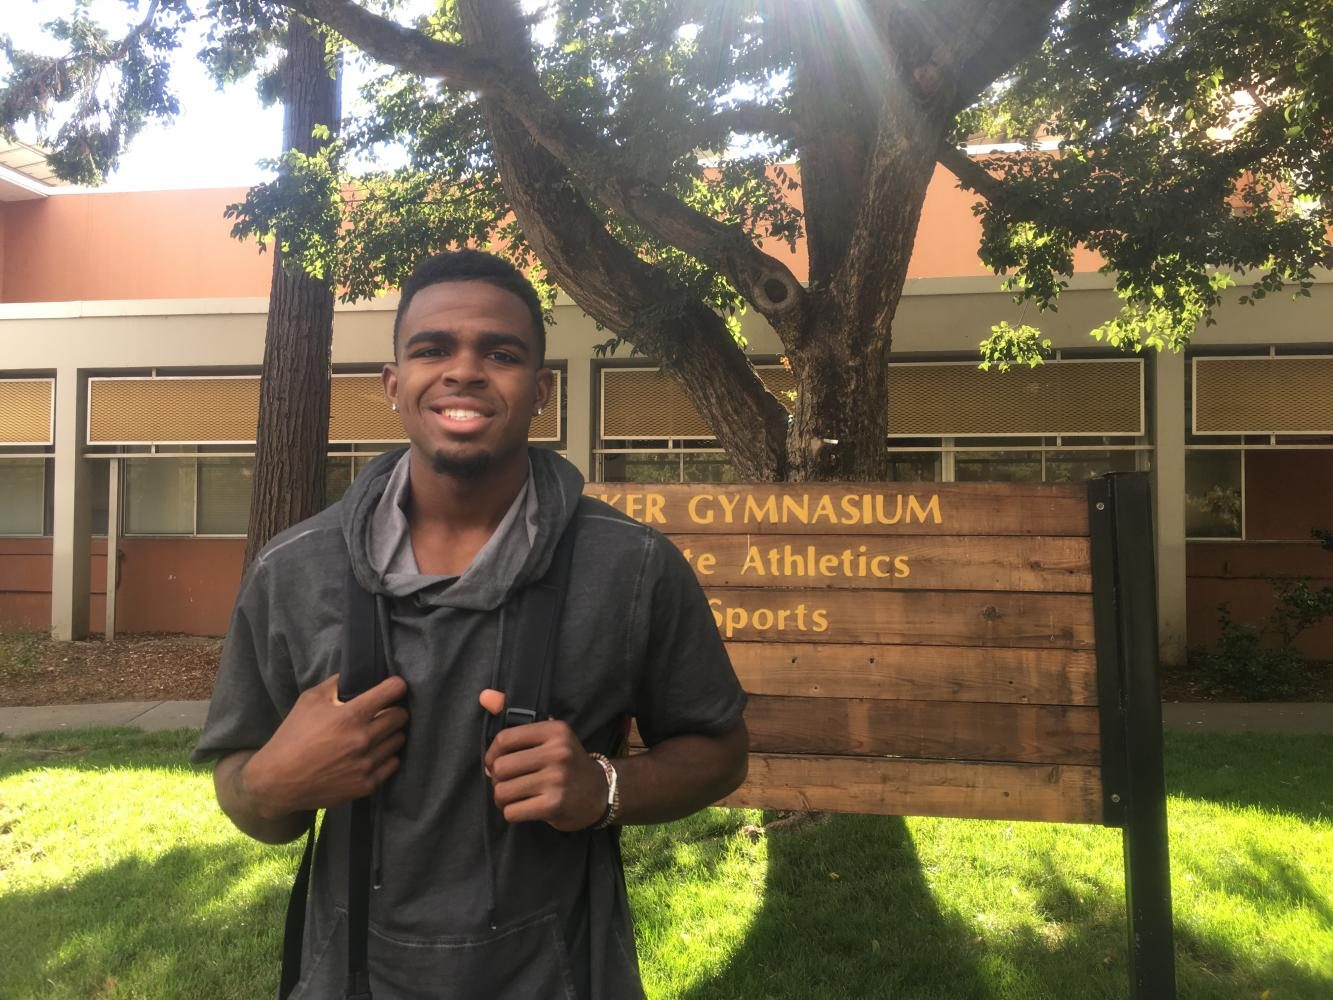 Jaylen%2C+a+Chico+State+senior%2C+helped+create+the+free+entertainment+app+ENT+Now.+Photo+credit%3A+Natalie+Hanson